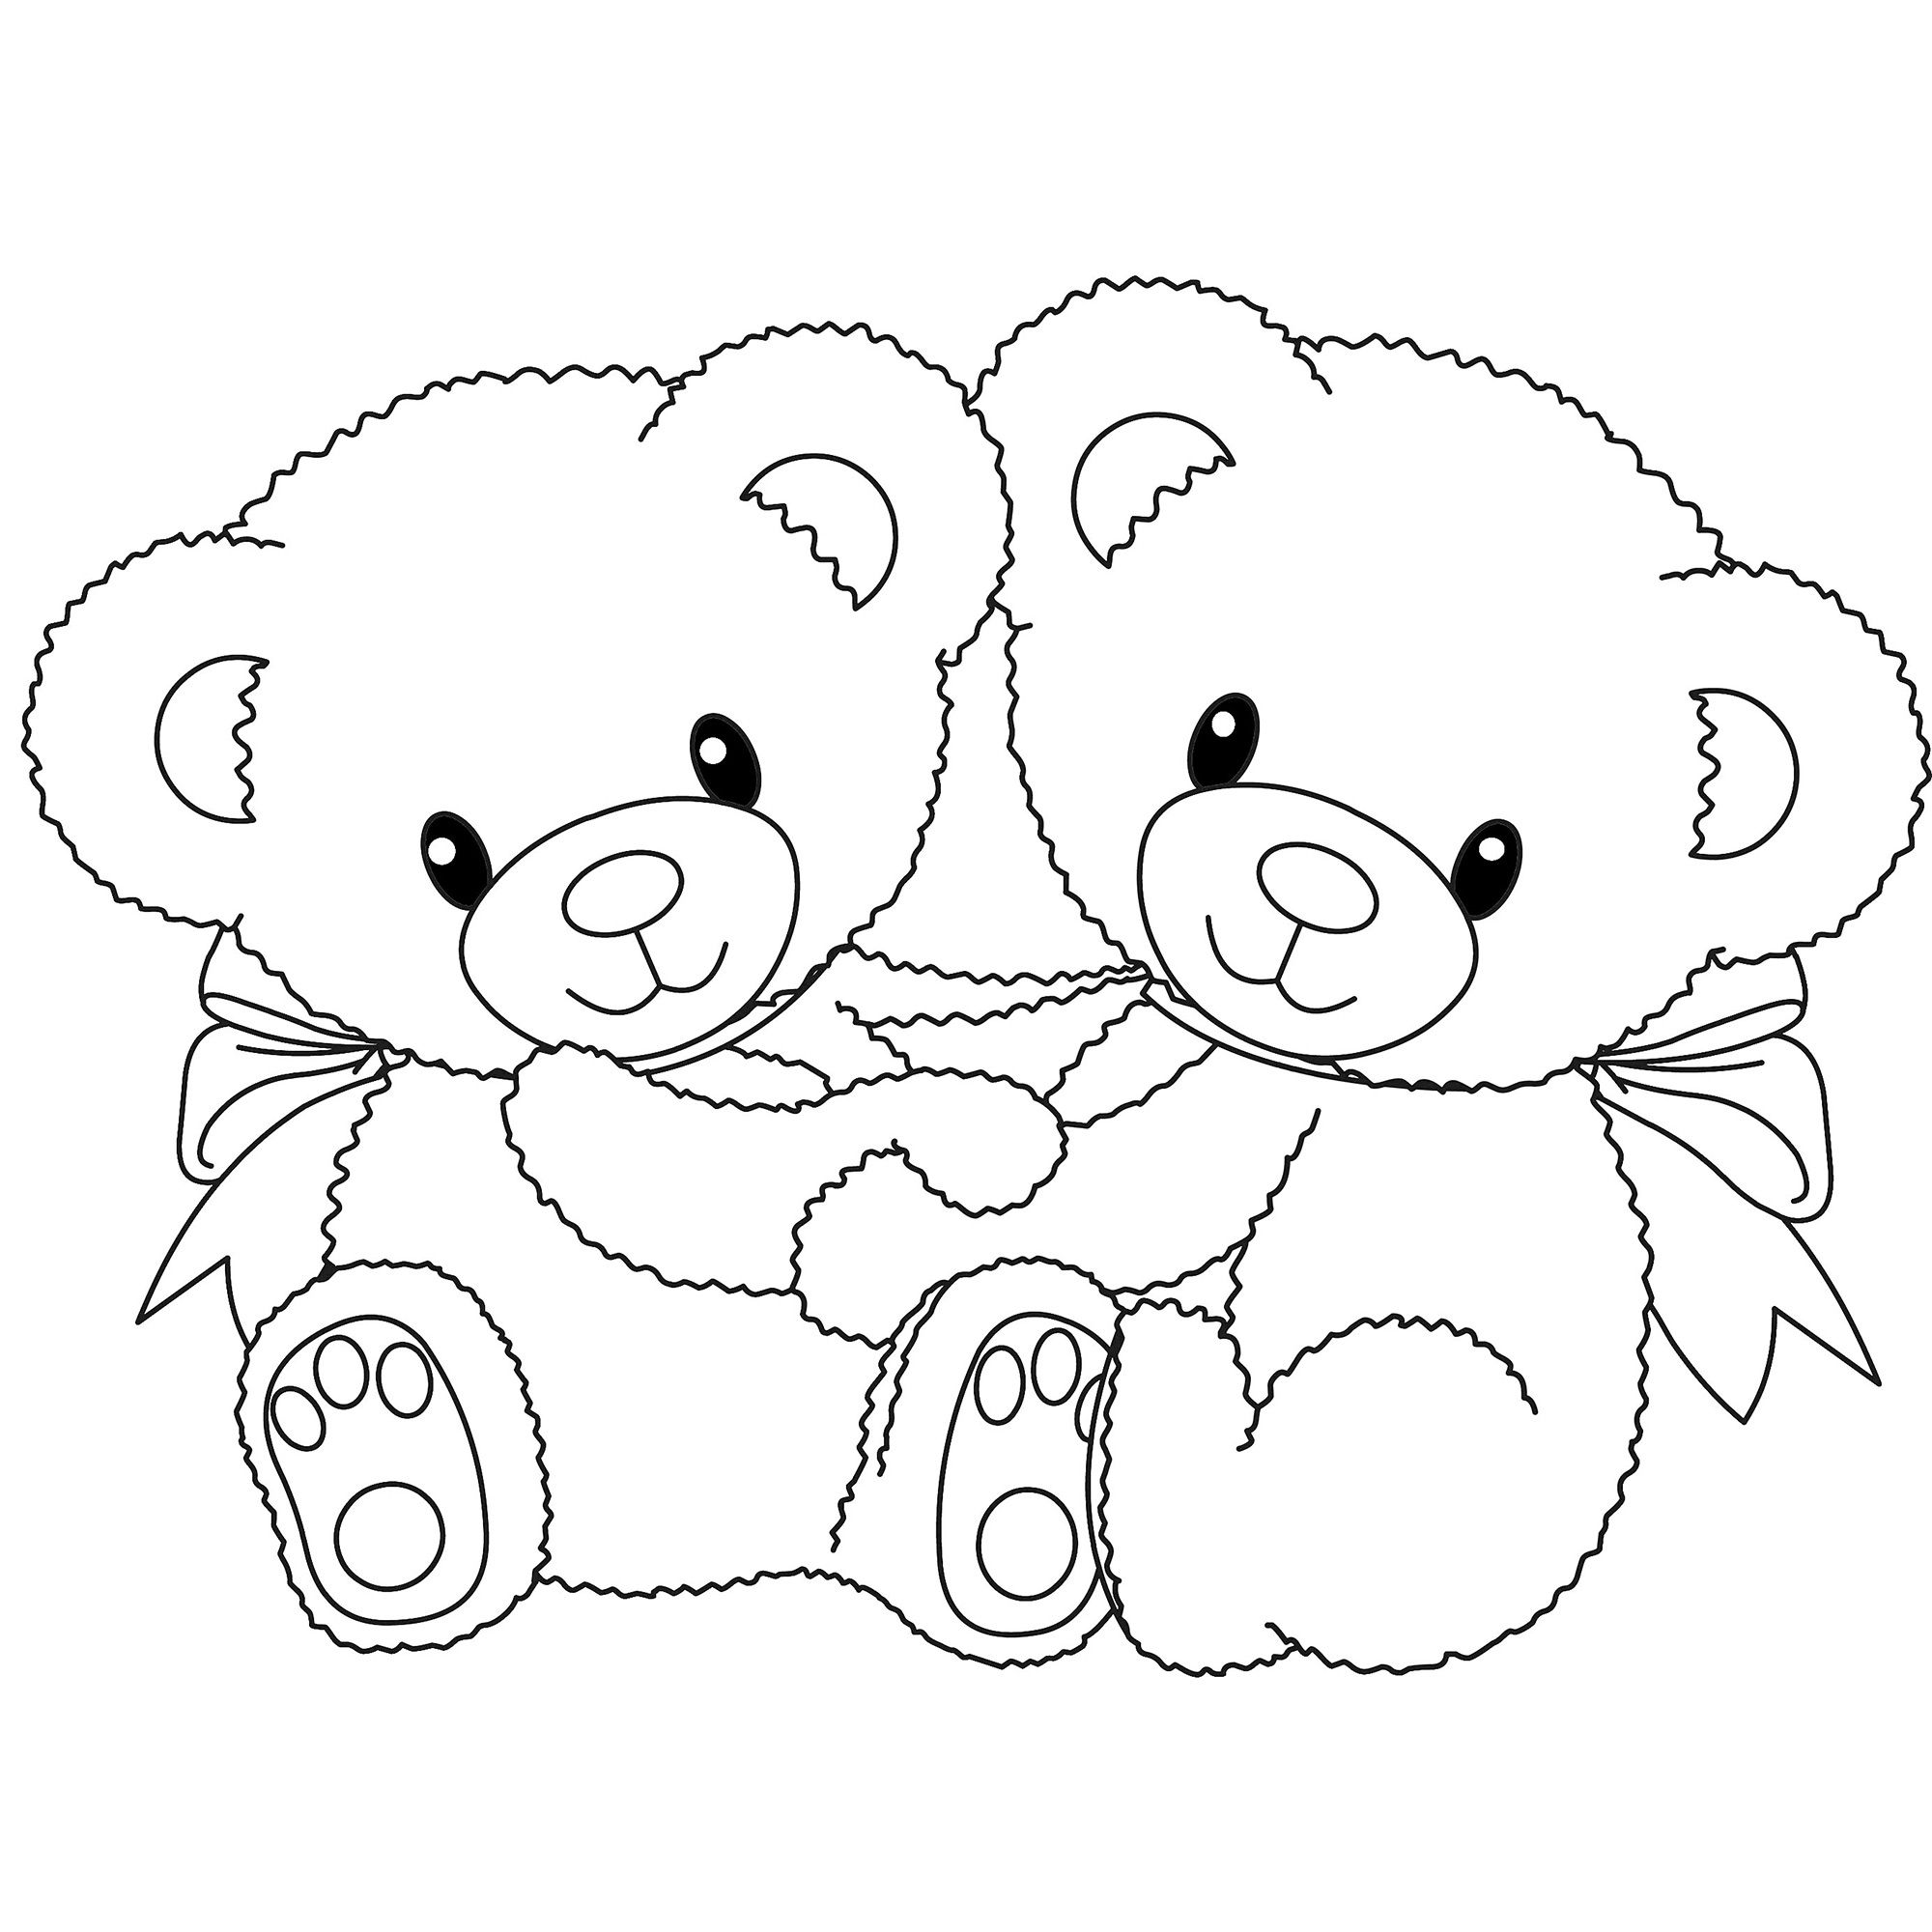 Teddy bear coloring pages free printable coloring pages Clip Art